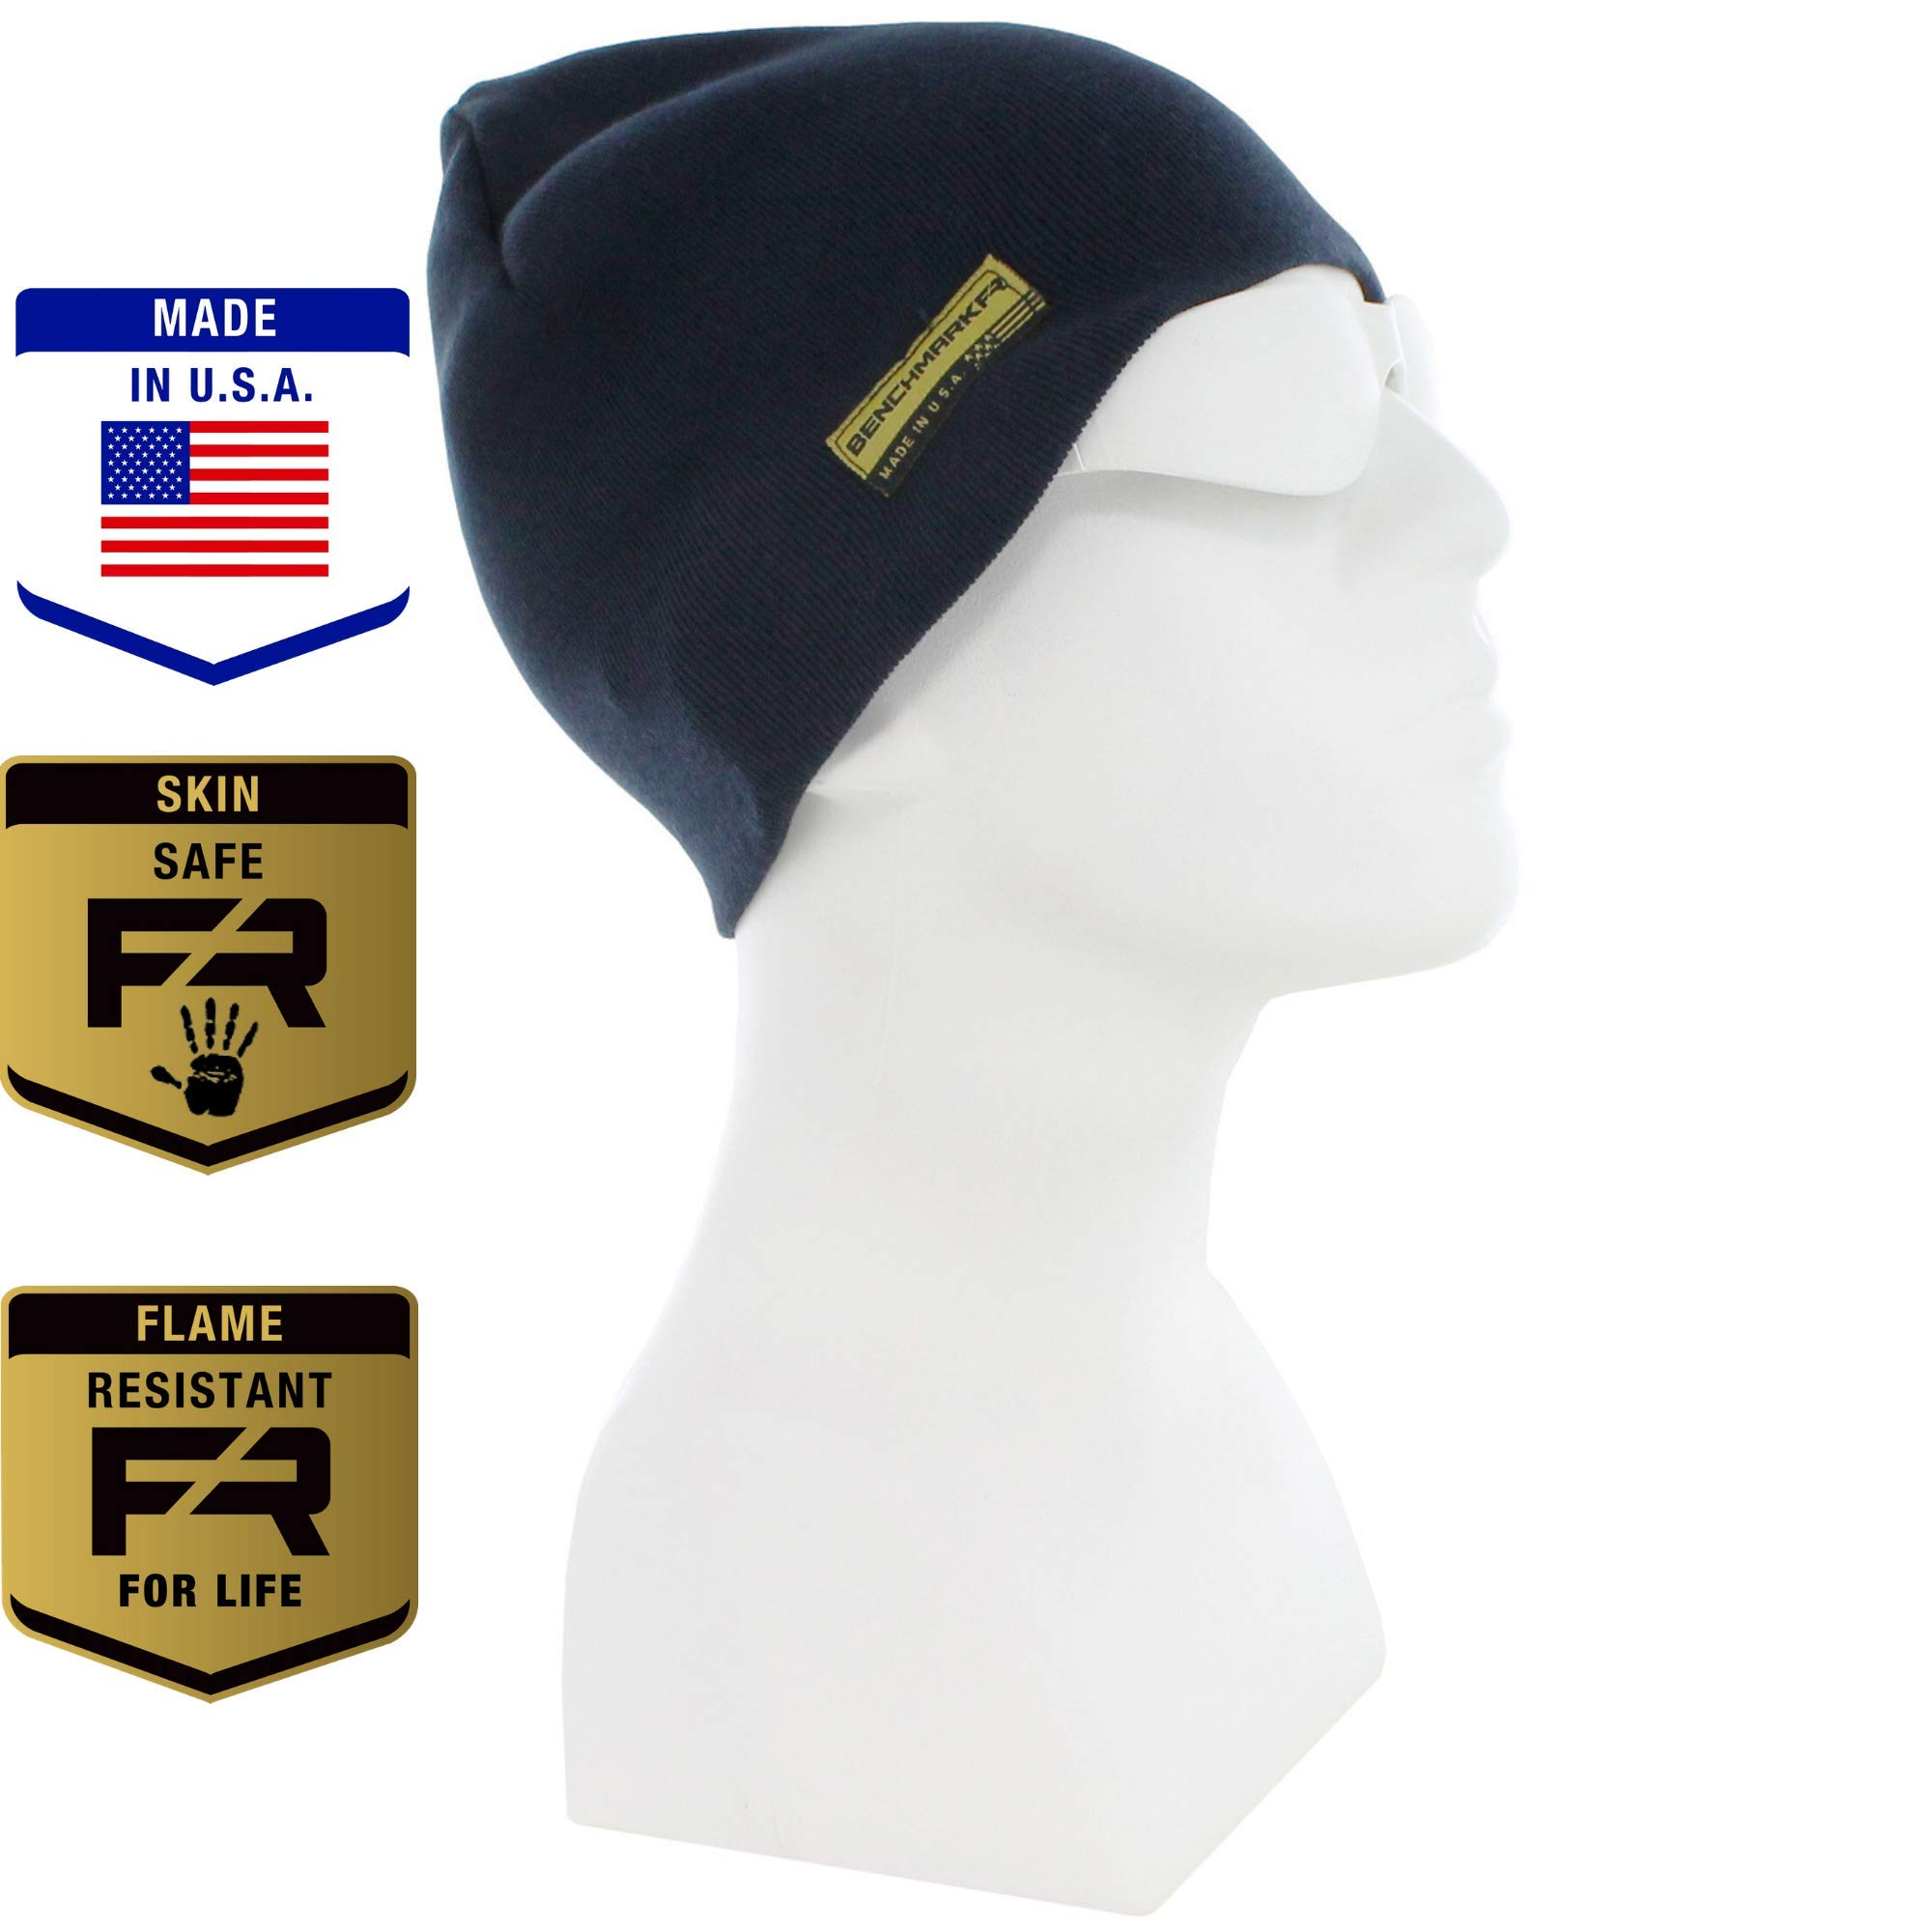 Benchmark FR Flame Resistant Skull Cap, Navy, Men's CAT 3 FRC with 36 Cal Rating, Warm, Made in USA, Inherent FR Materials